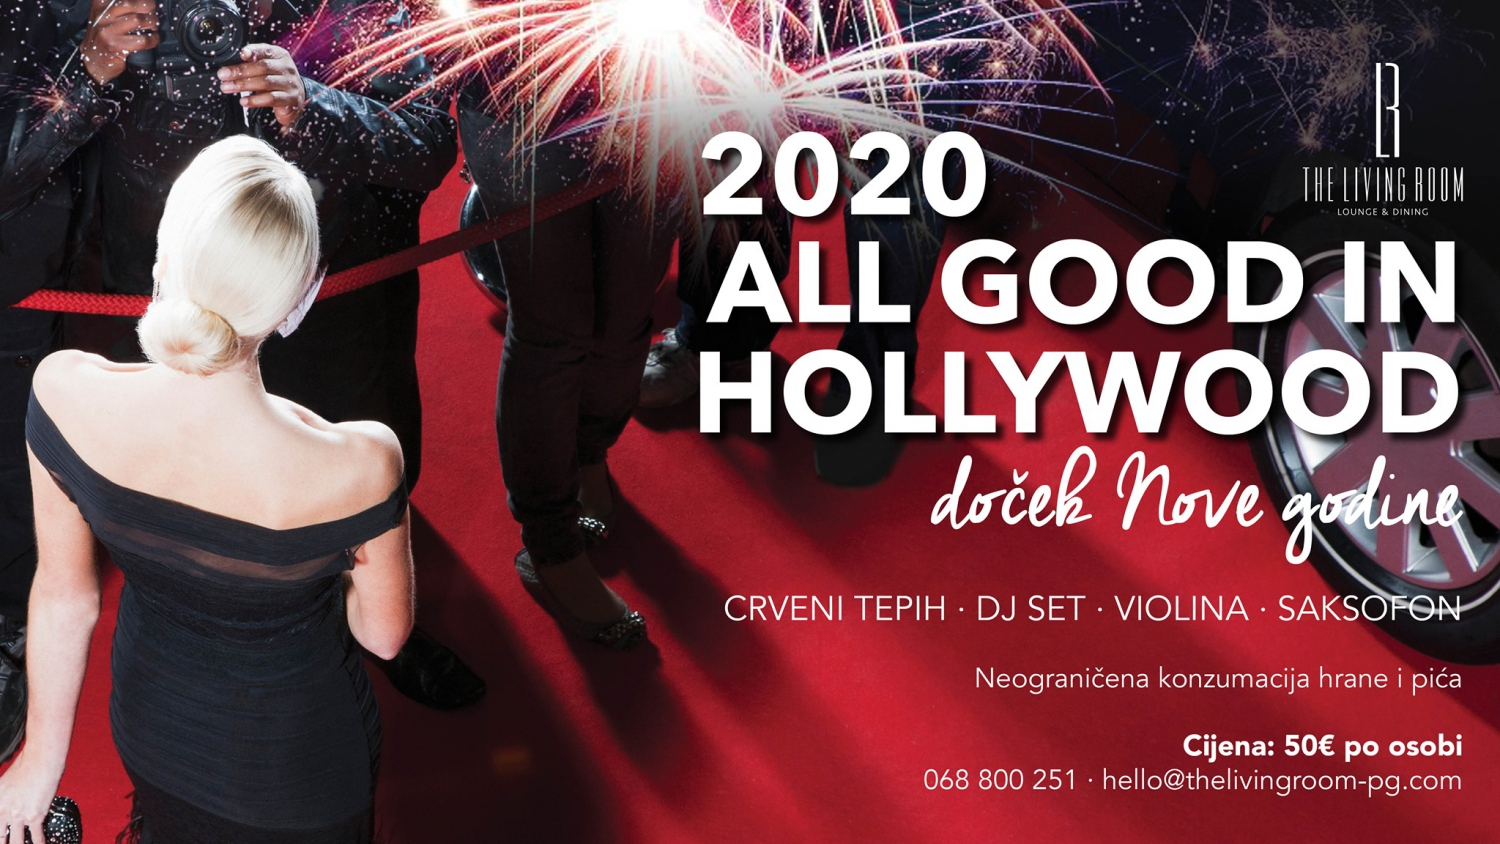 All Good in Hollywood: New Year`s Eve Party at Centreville Hotel